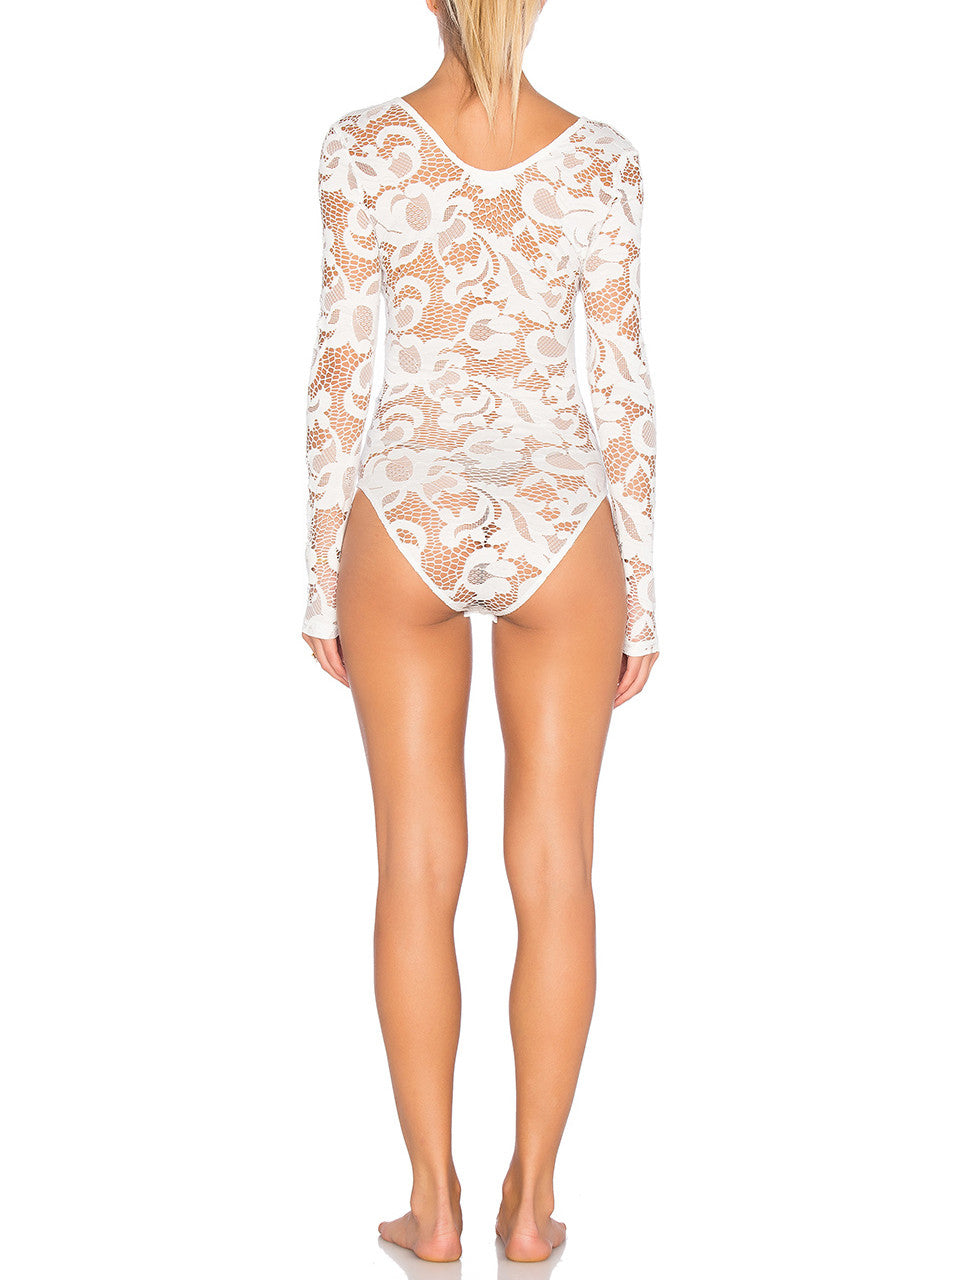 High Speed Floral Lace Bodysuit - PRADEGAL